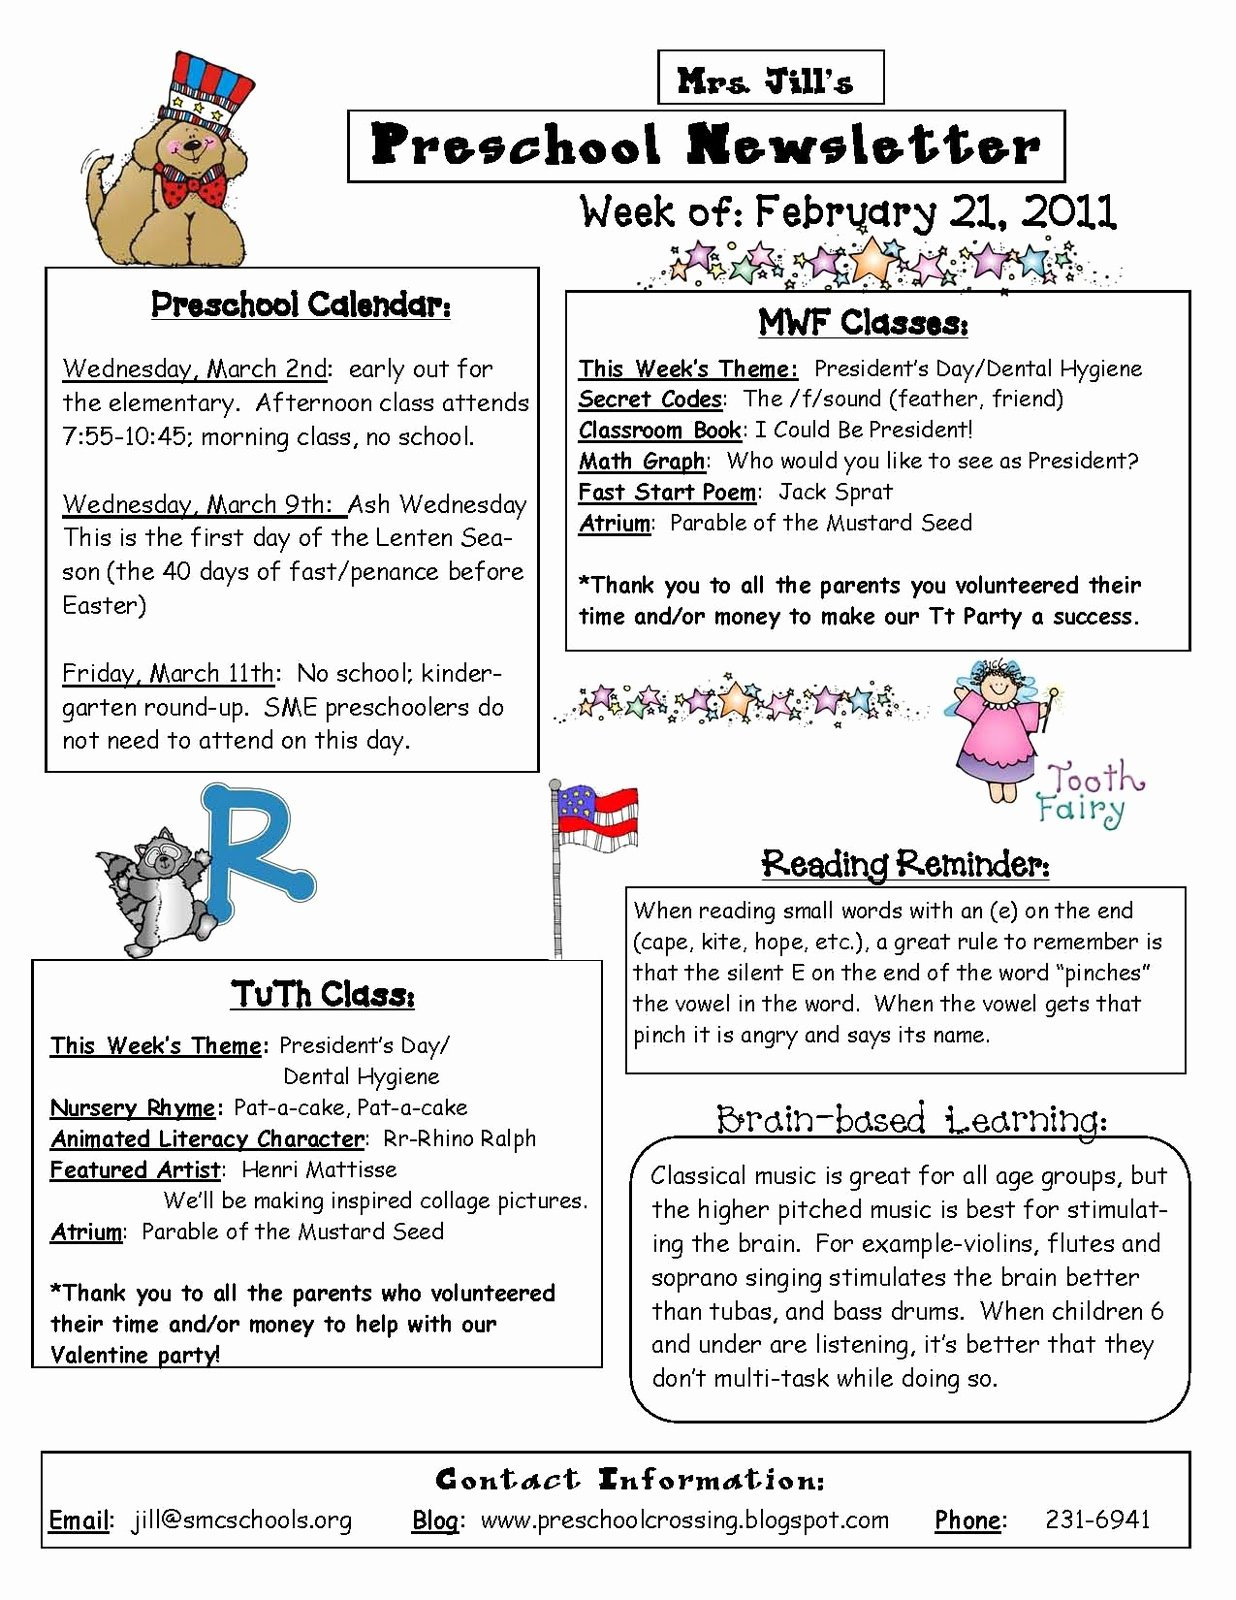 Preschool Weekly Newsletter Templates Unique Preschool Crossing Here is An Example Of My Weekly Newsletter